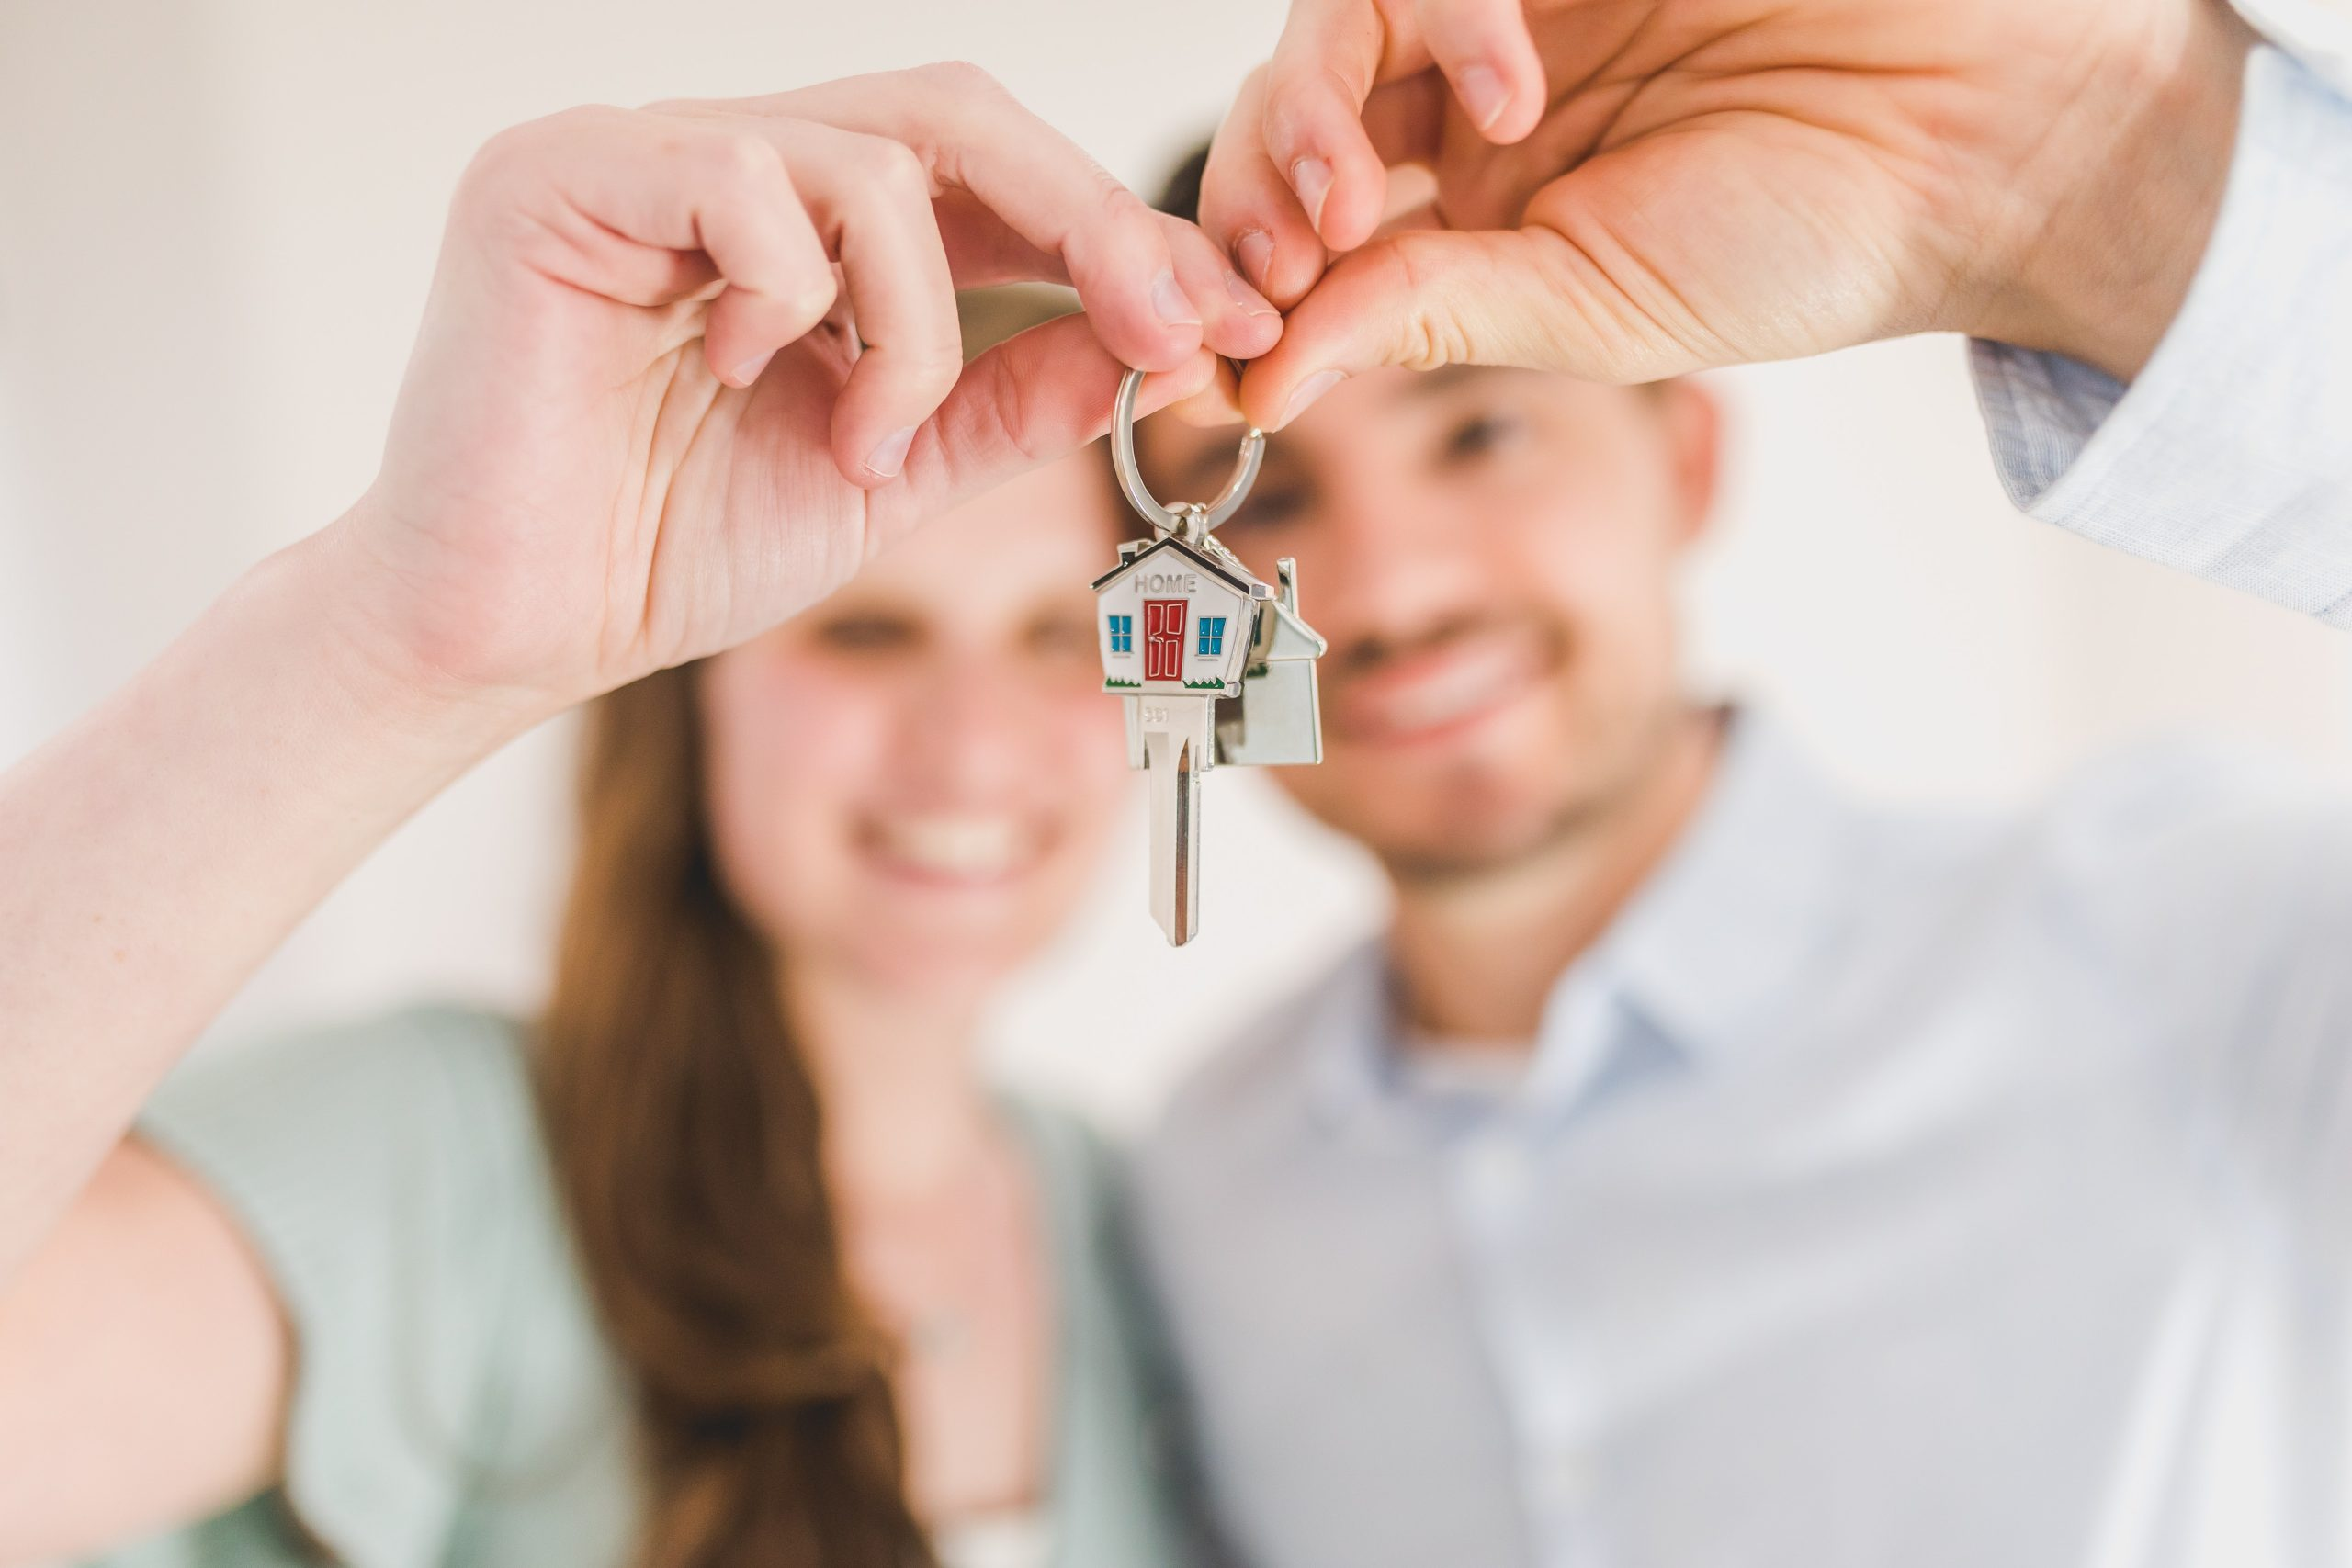 Man and woman holding keys to new home